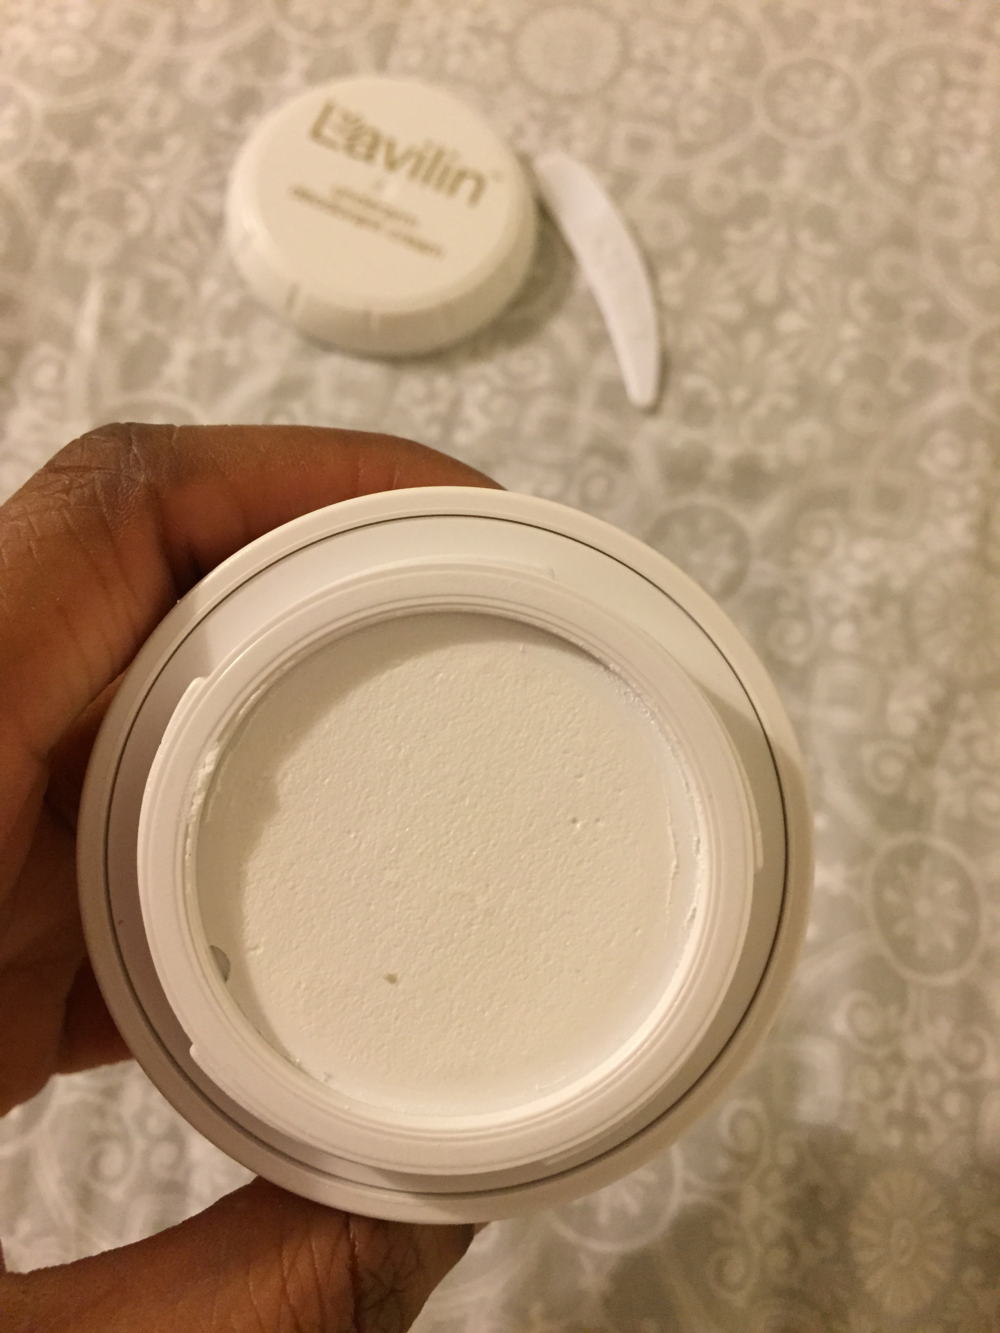 Lavilin natural deodorant cream